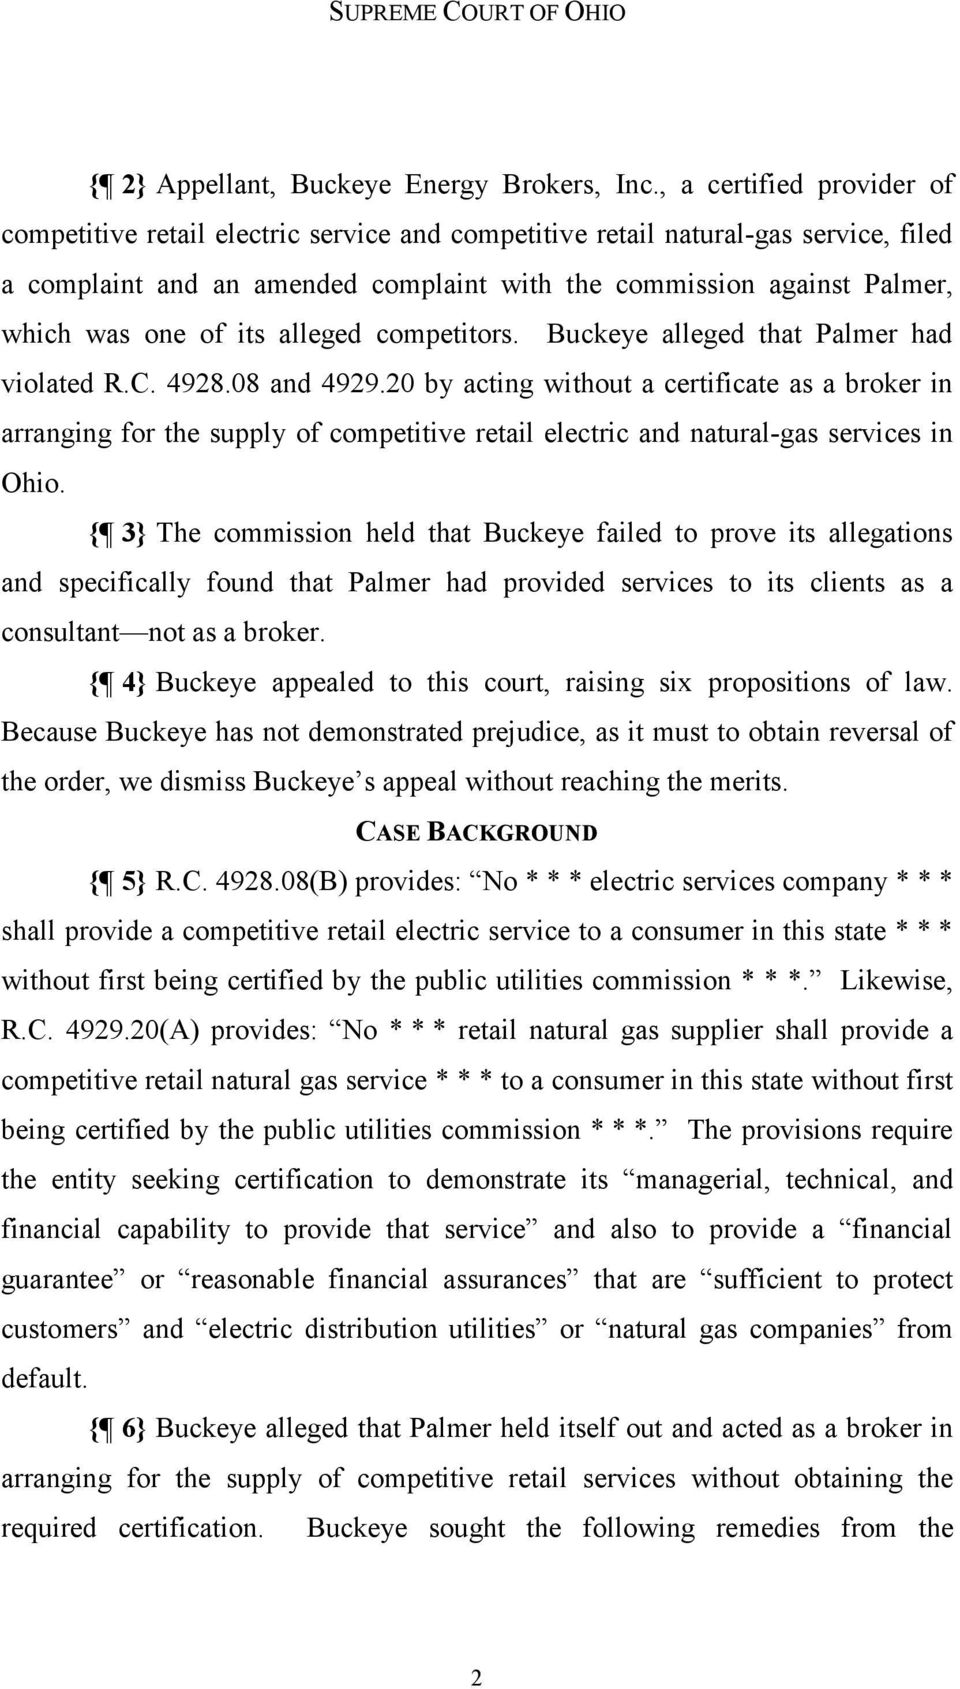 of its alleged competitors. Buckeye alleged that Palmer had violated R.C. 4928.08 and 4929.